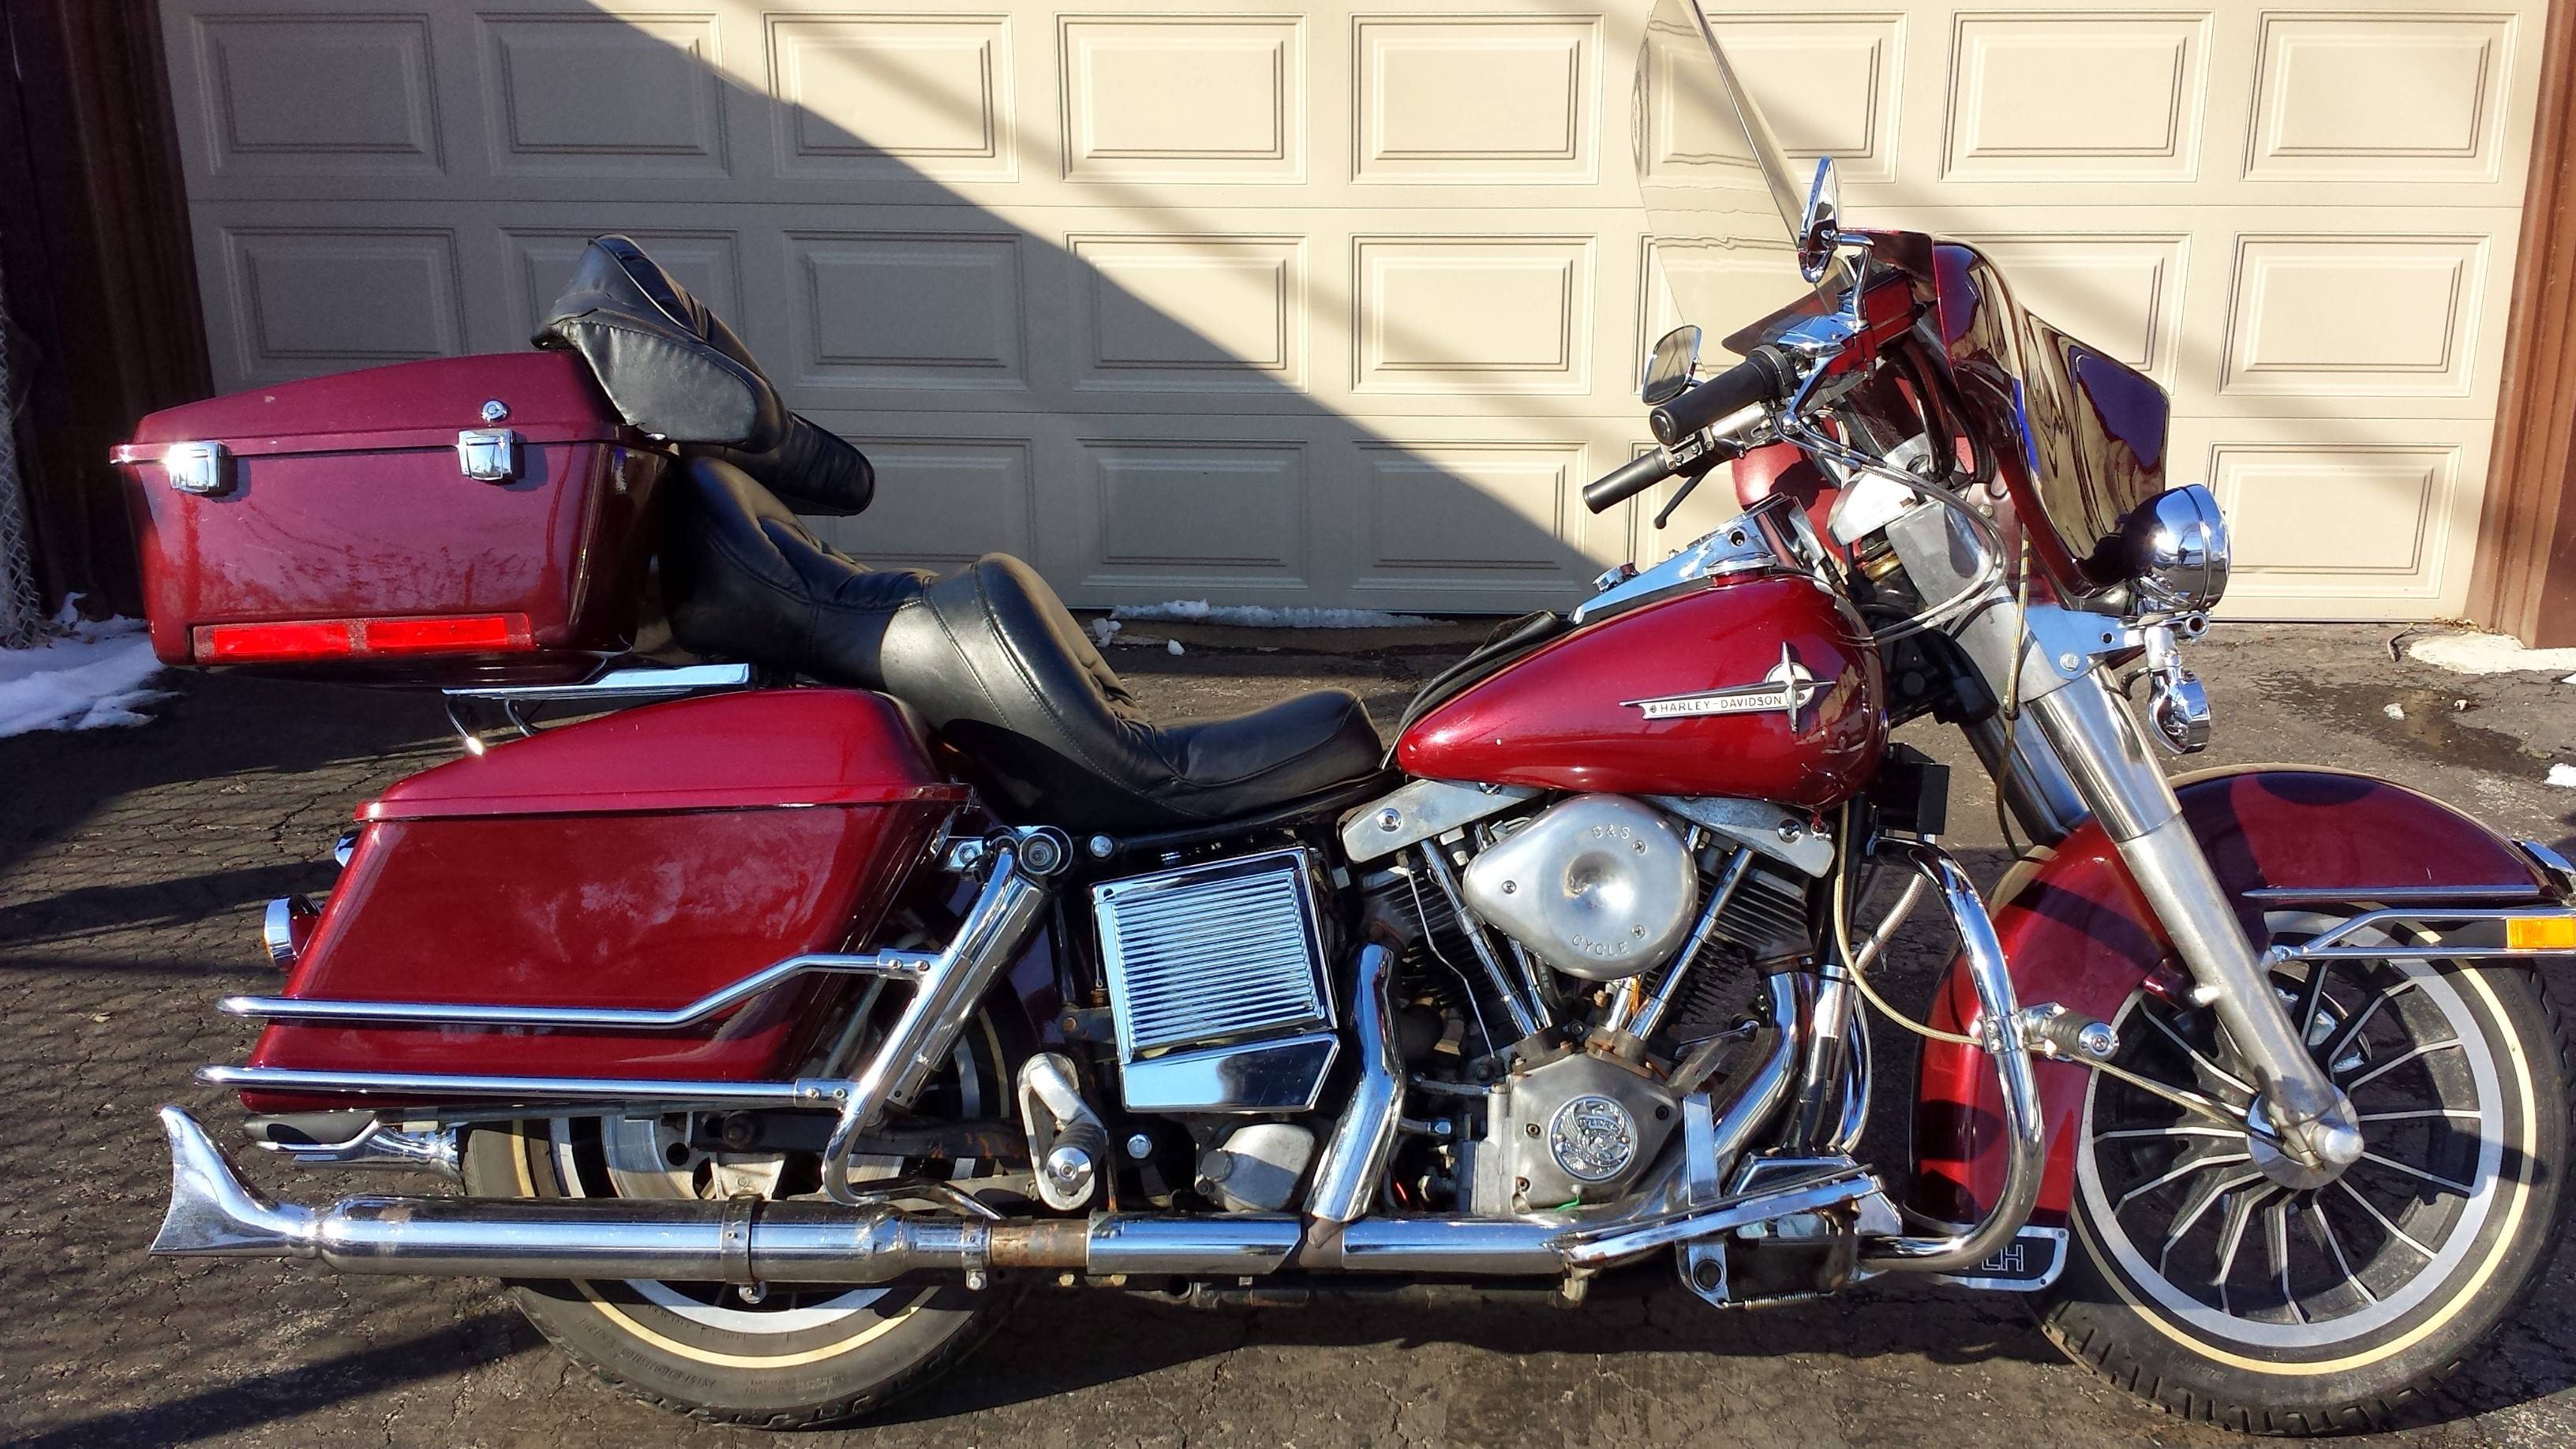 Harley-Davidson FLHTC 1340 Electra Glide Classic 1983 images #173494